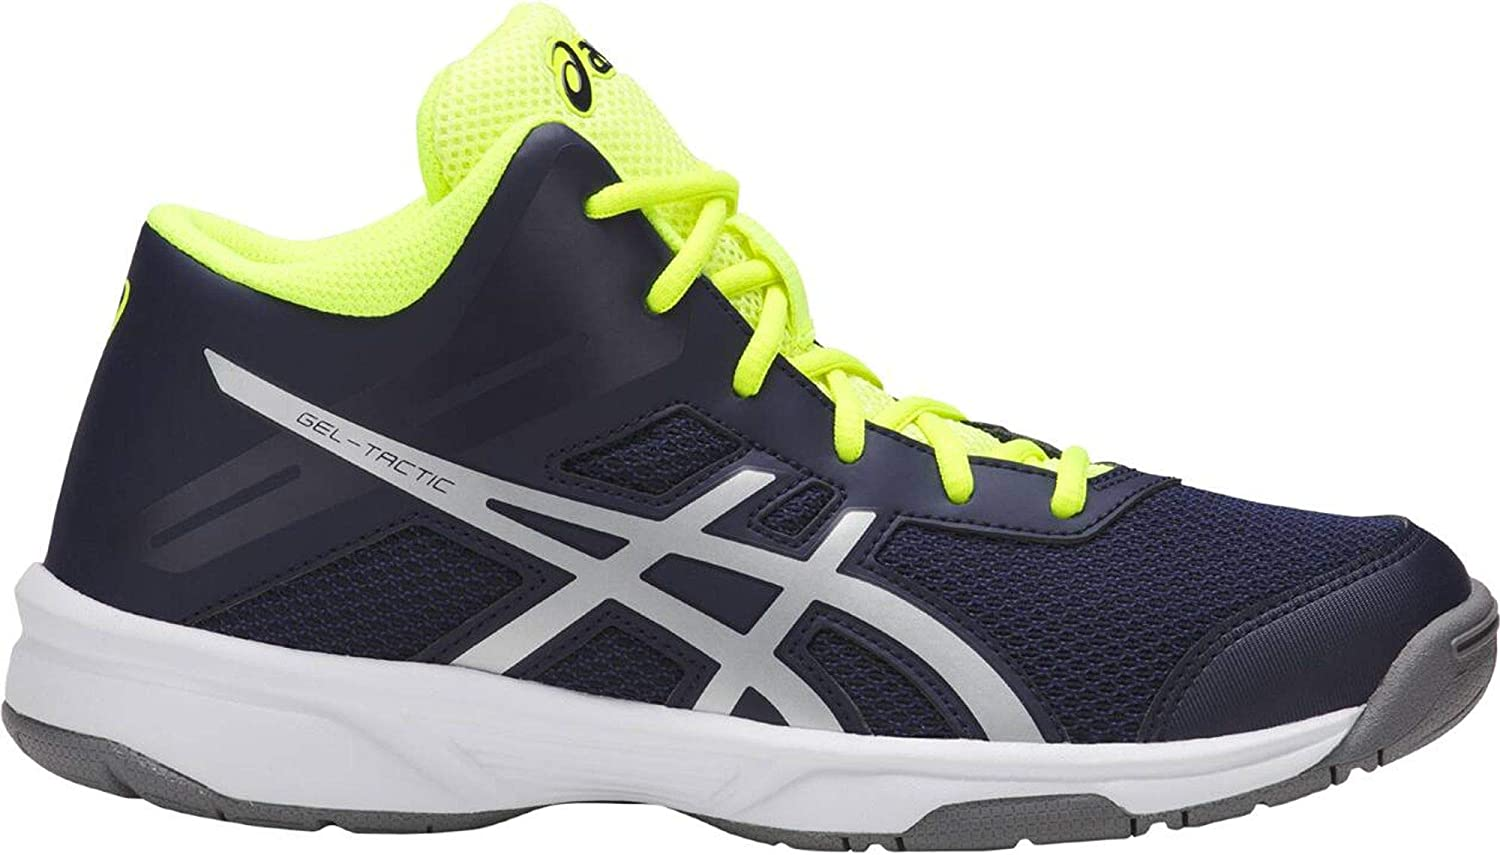 ASICS Gel Tactic GS C732y 400, Chaussures de Volleyball